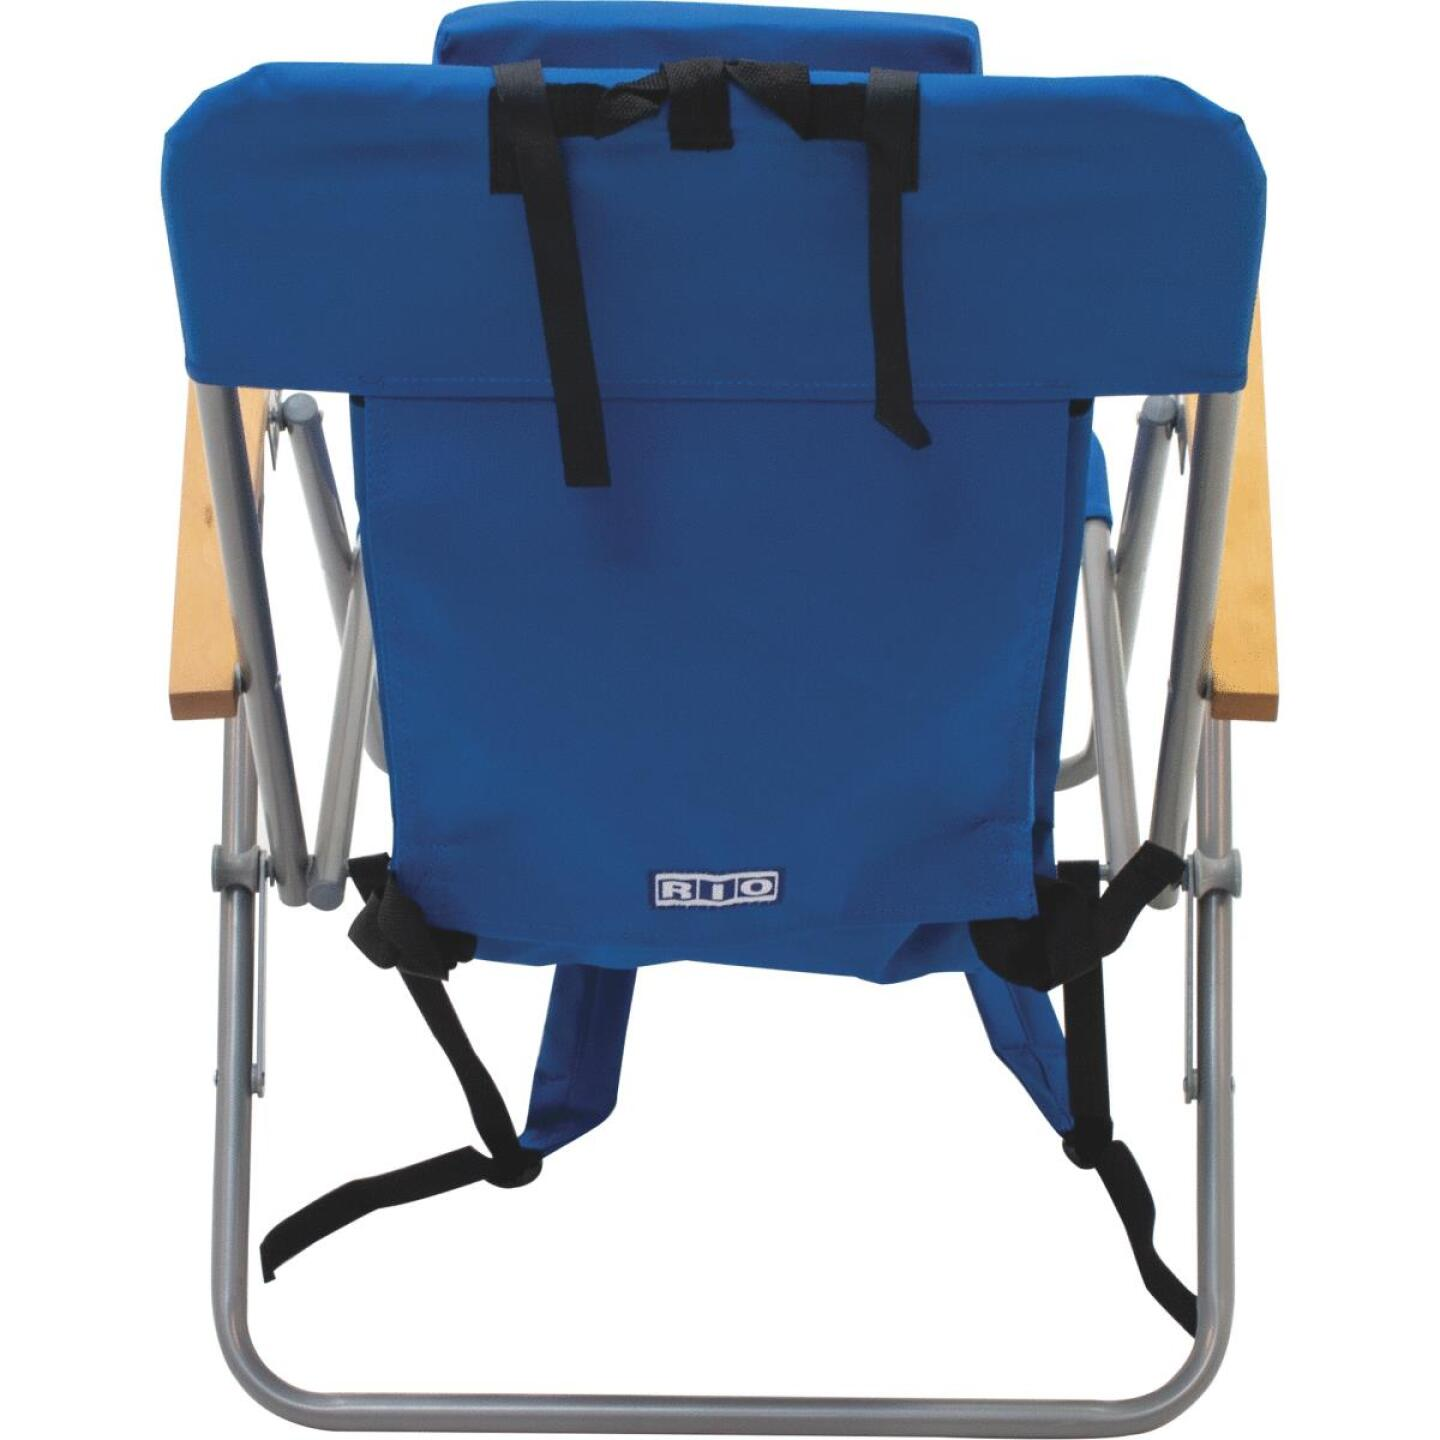 Rio Brands Blue Canvas Backpack Folding Chair Image 3